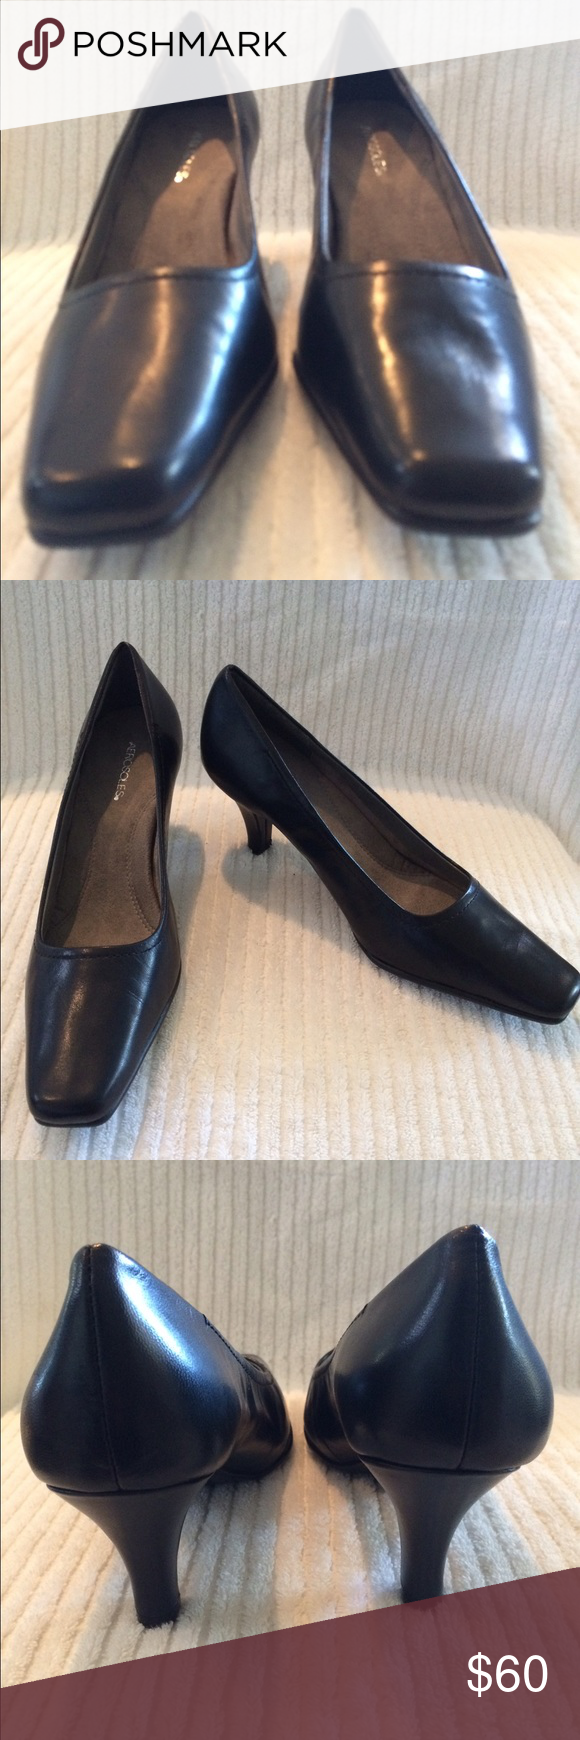 Aerosols low heel leather pumps Very comfortable but never worn outside of the store. AEROSOLES Shoes Heels